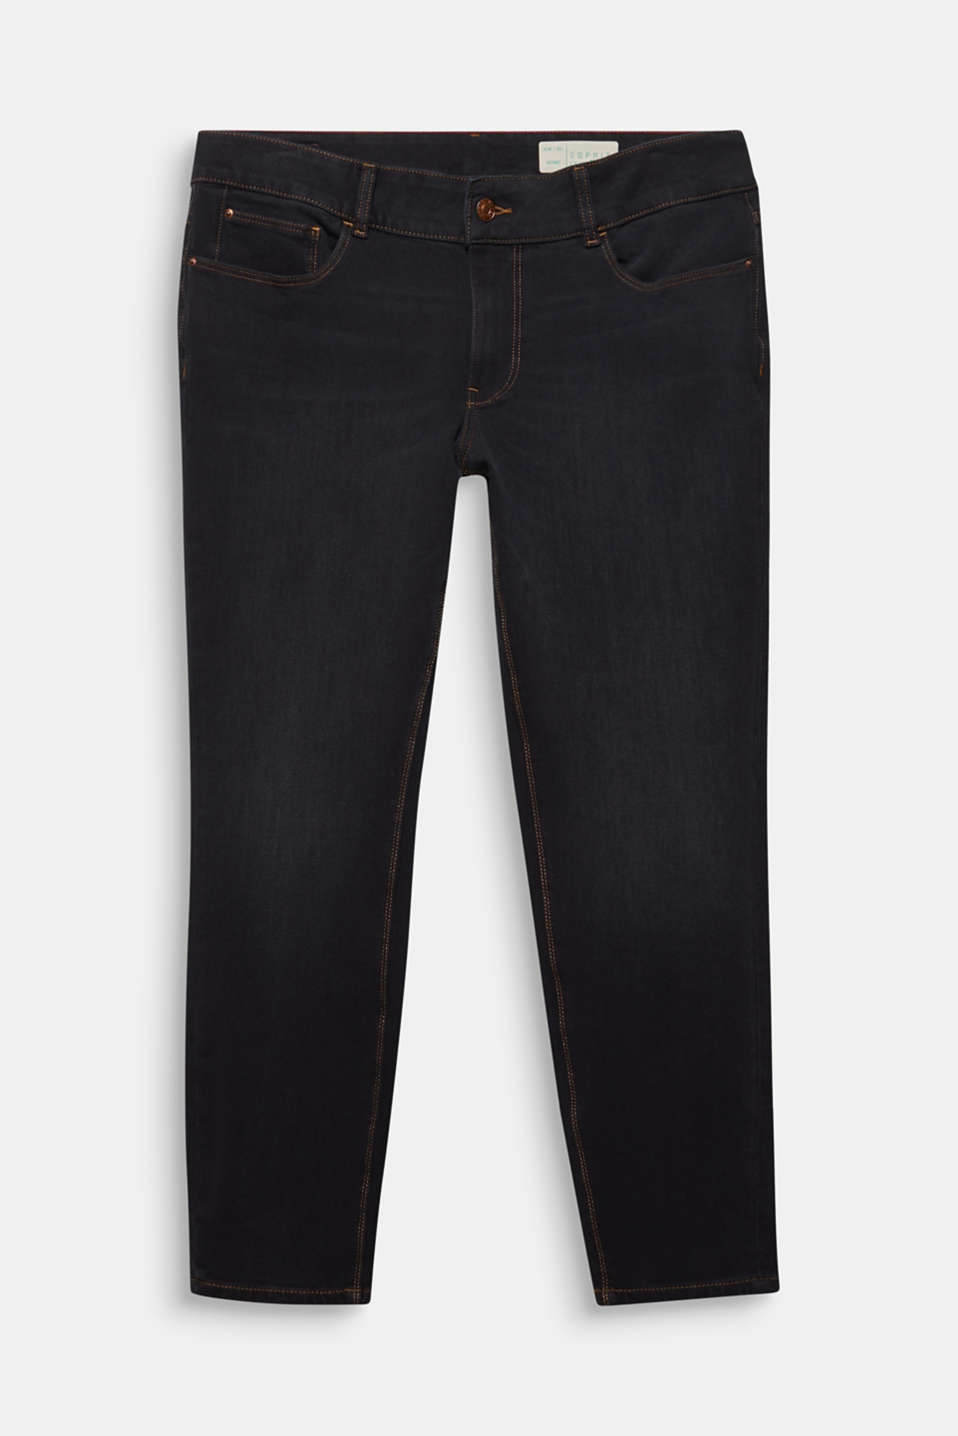 CURVY two-way stretch jeans, BLACK DARK WASH, detail image number 7